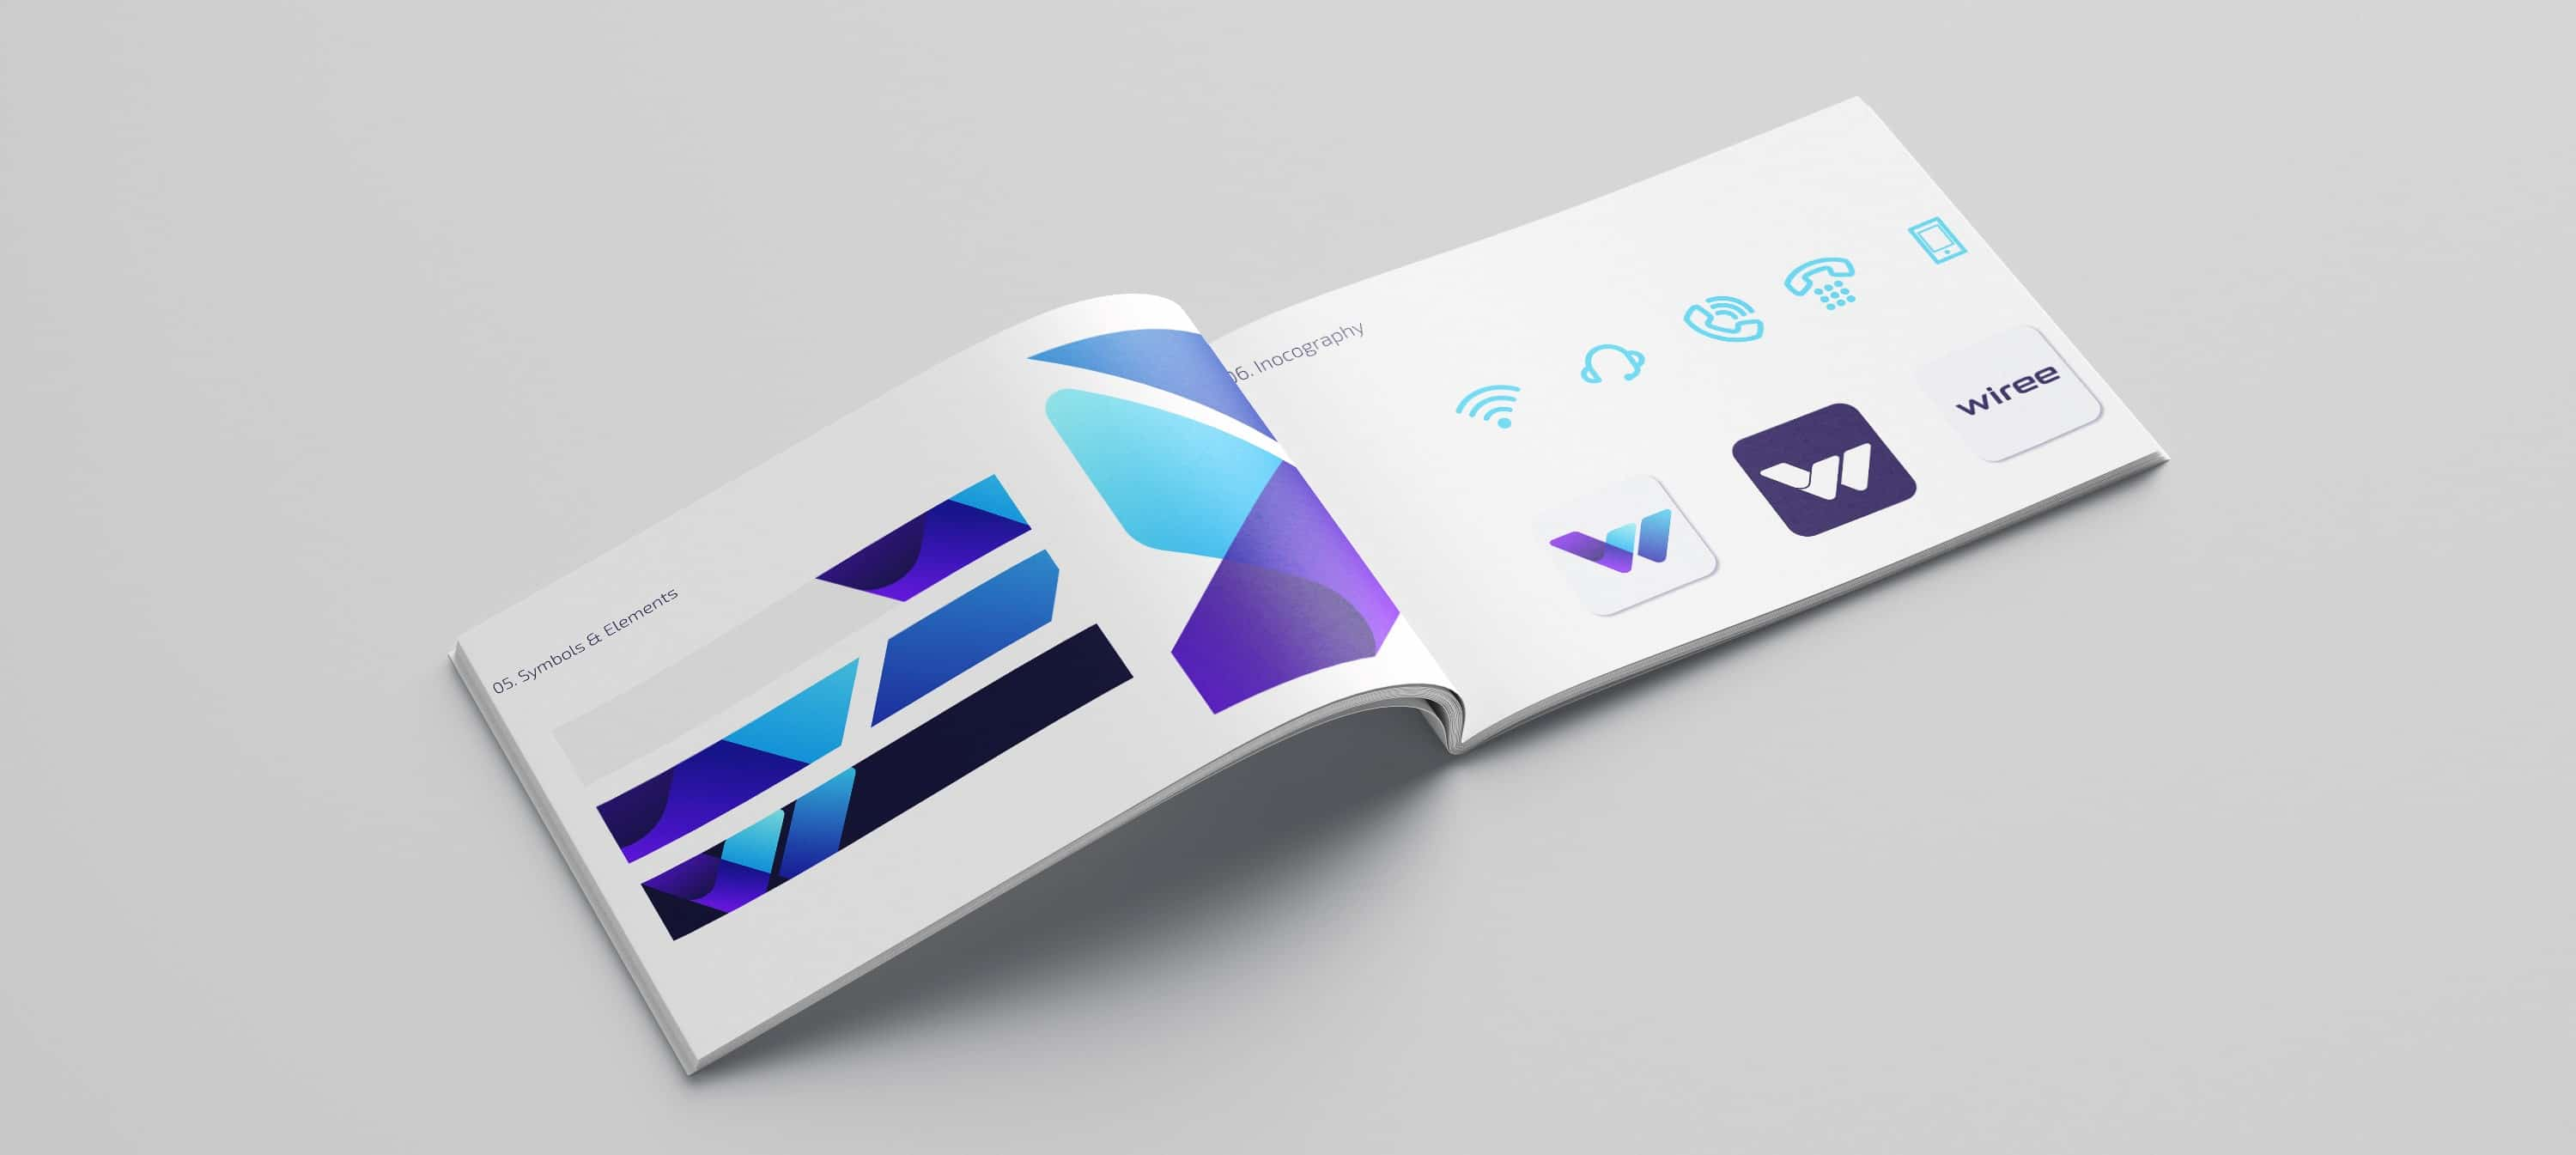 Improve graphic design for business | Wiree brand guidelines